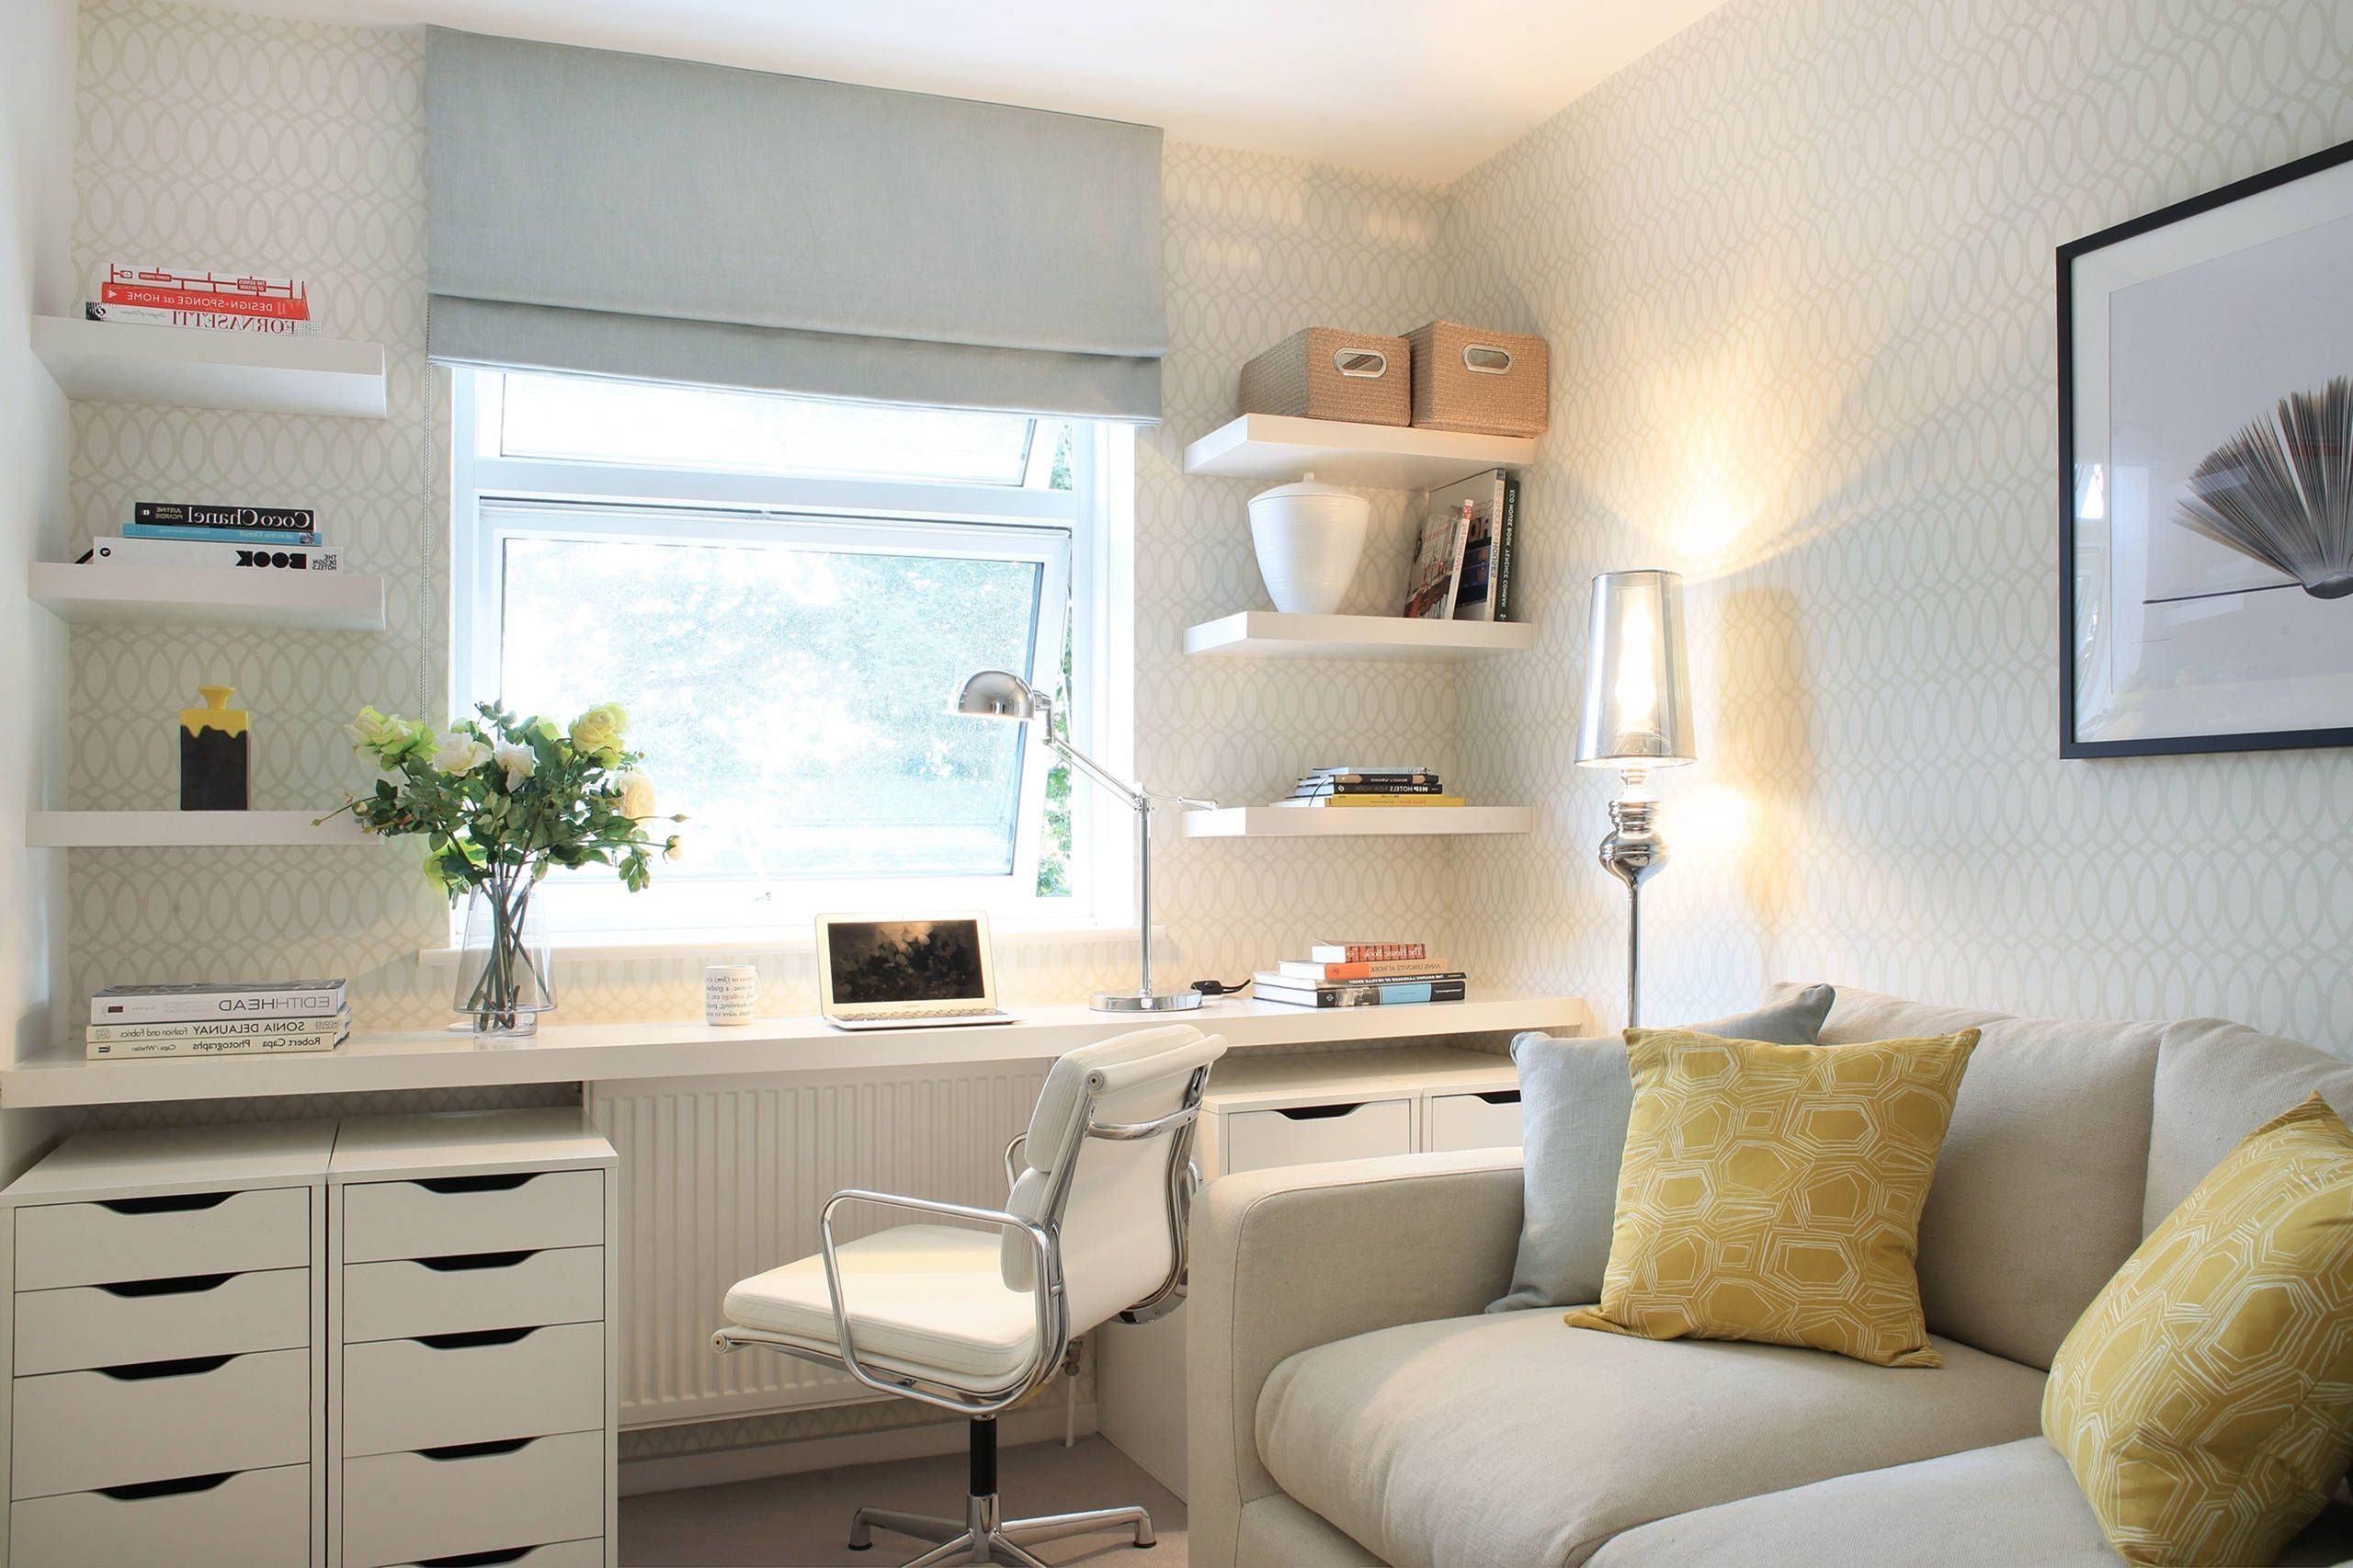 30 Beautiful Home Office Design Ideas For Small Spaces In 2020 Home Office Design Small Bedroom Office Guest Room Office